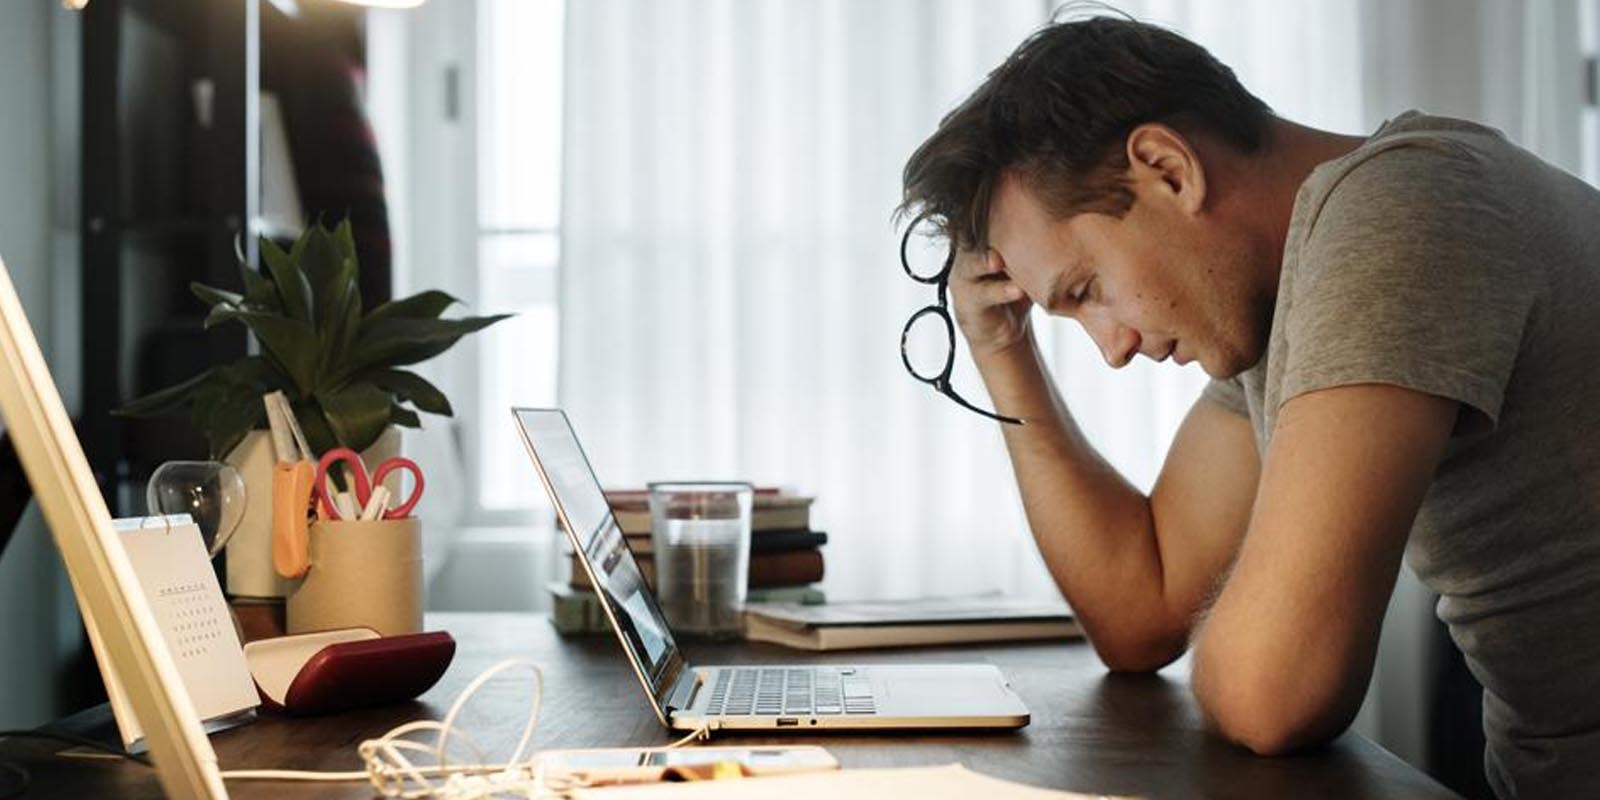 Don't let Work Stress Control your Life: Tips for not Running out of the Office